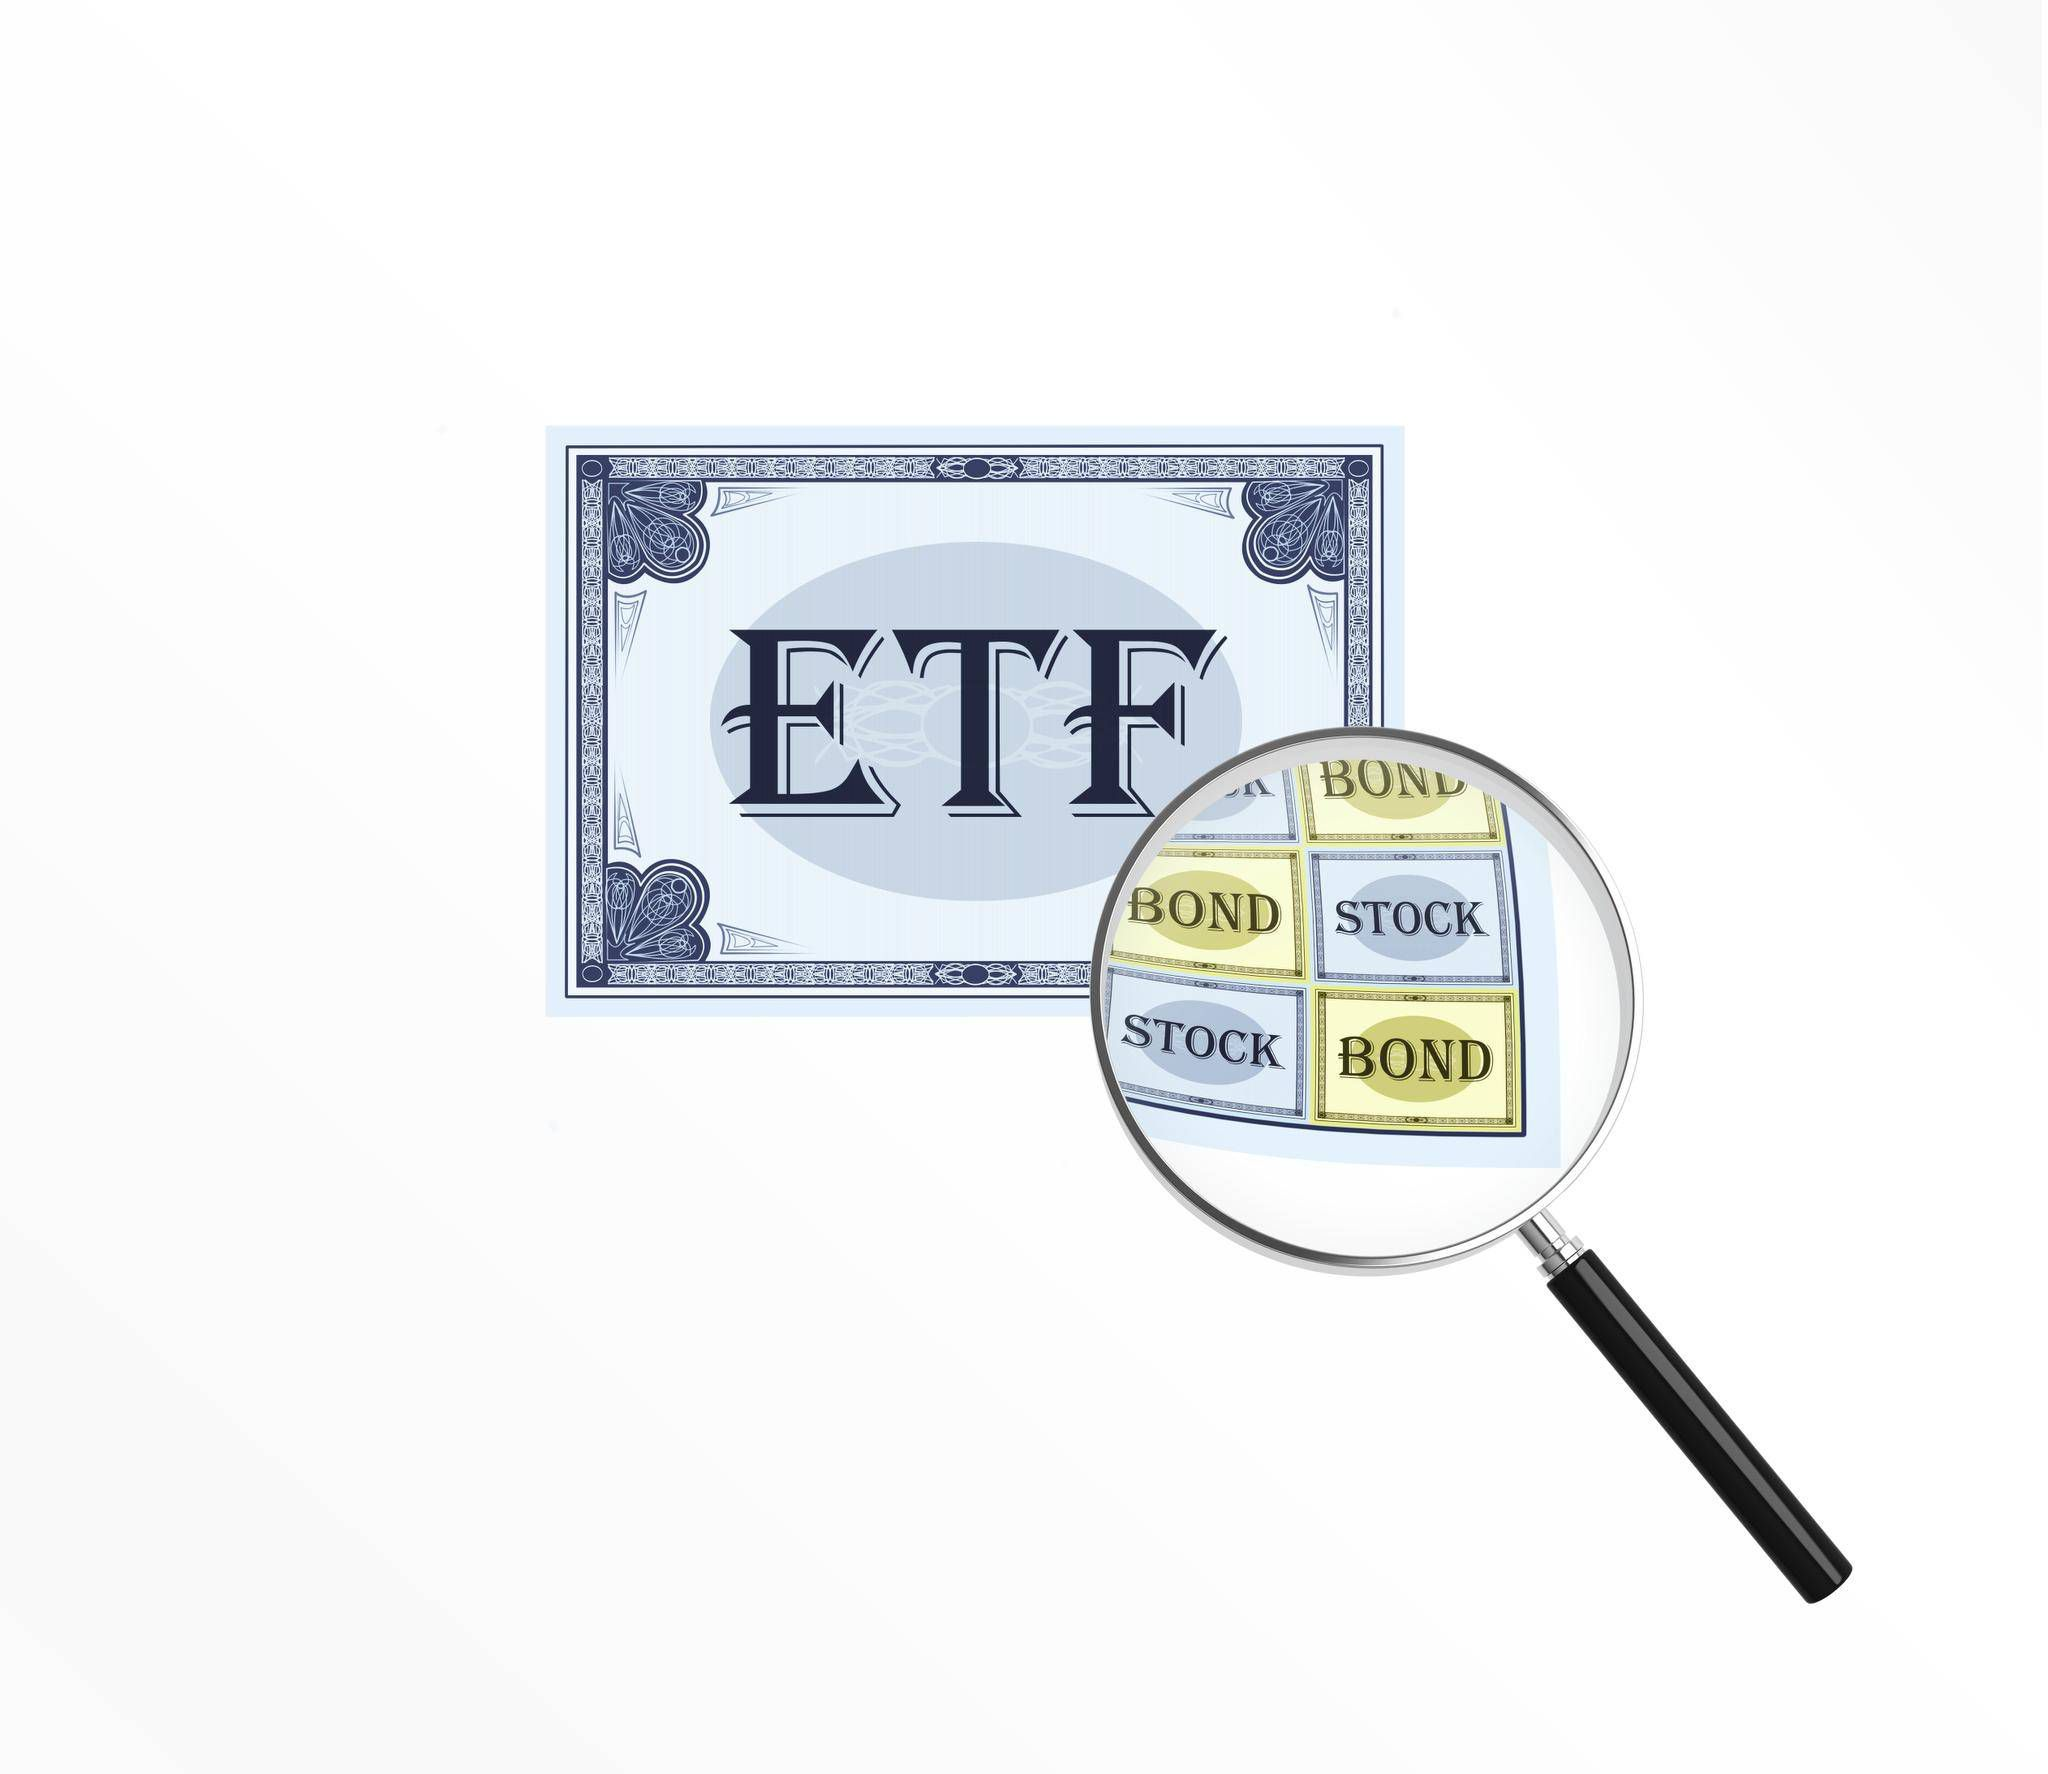 What investors need to know about tactical bond ETFs - The